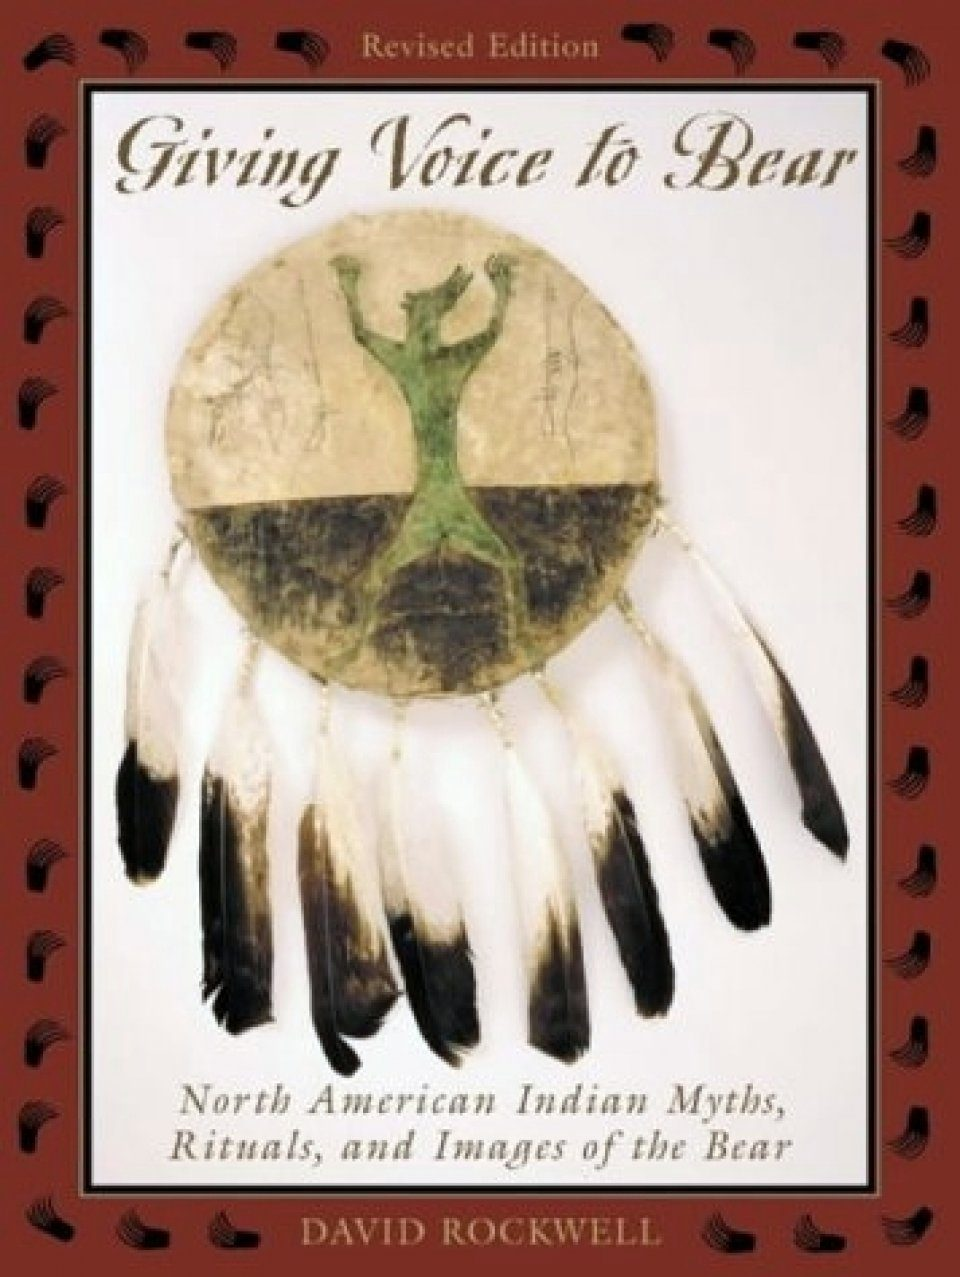 Giving Voice to Bear: North American Indian Rituals. Myths and Images of the Bear